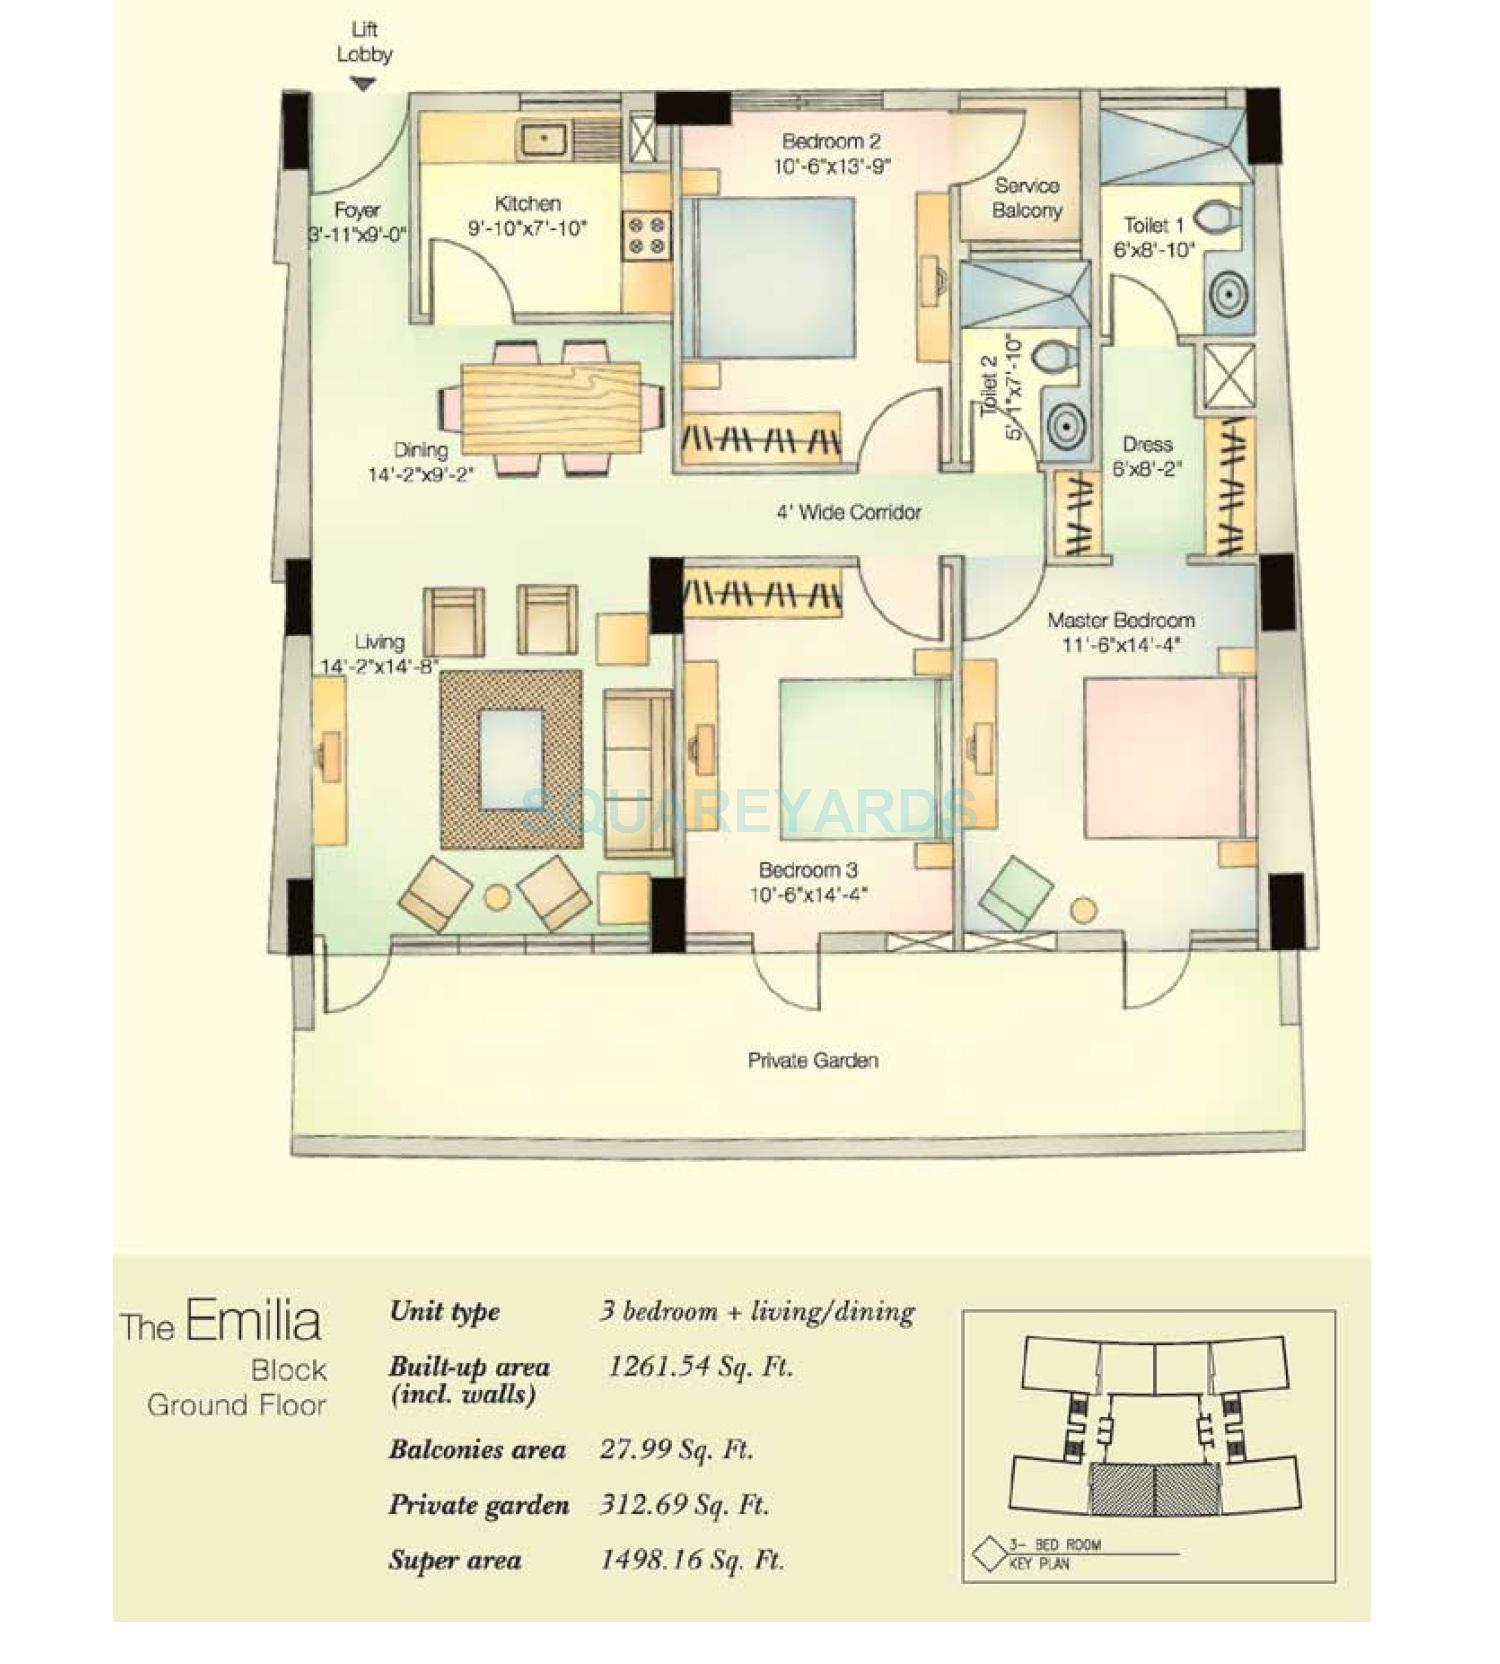 vatika city emilia apartment 3bhk 1498 16sqft 1